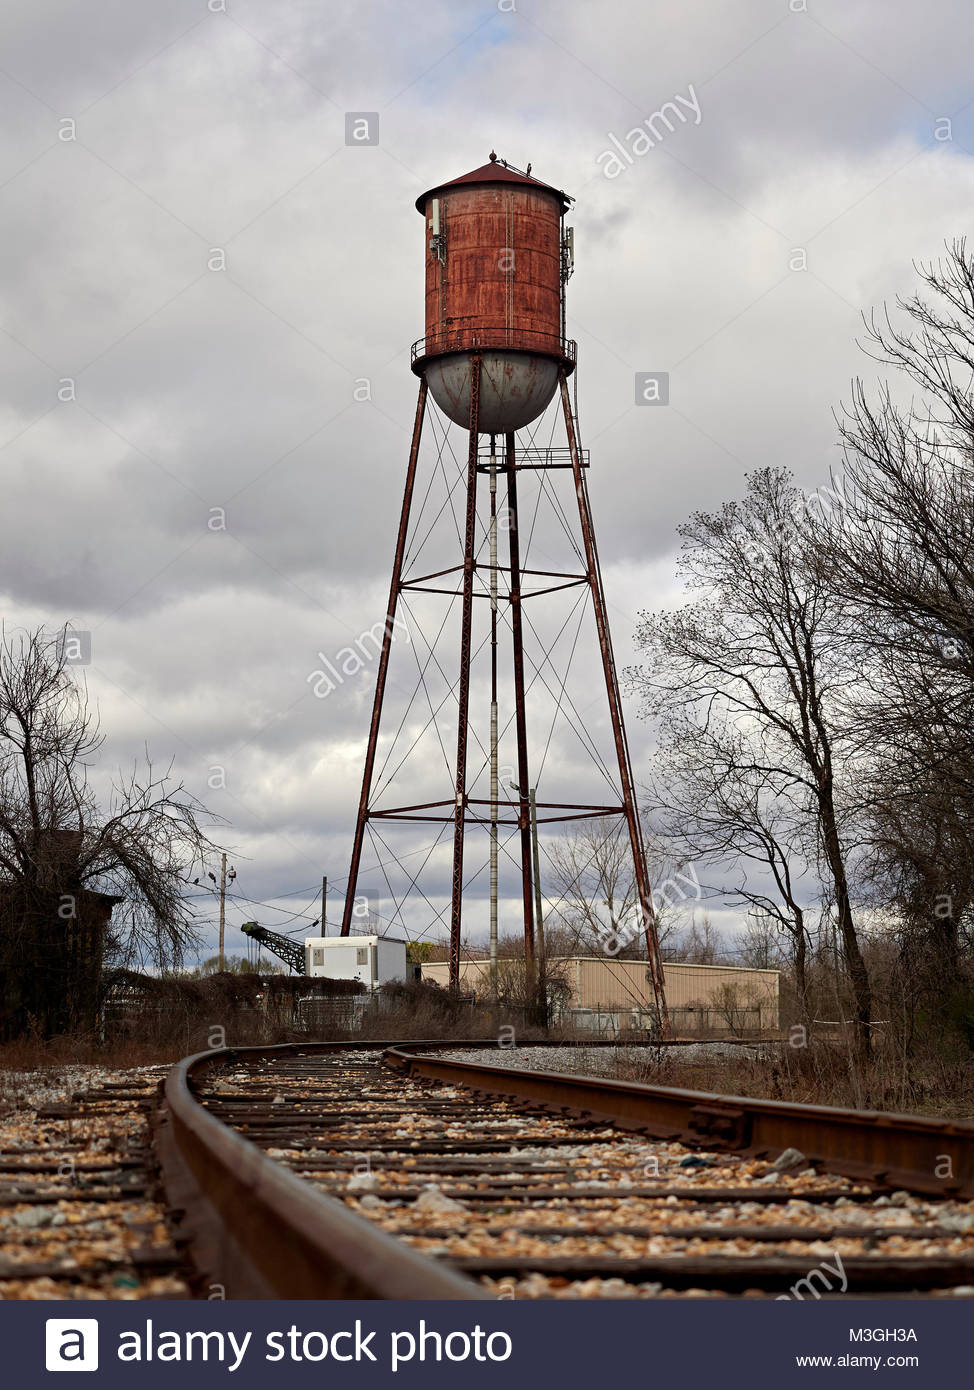 Old rusty or rusting water tower converted into a cell tower along railroad tracks in Montgomery Alabama, USA. - Stock Image